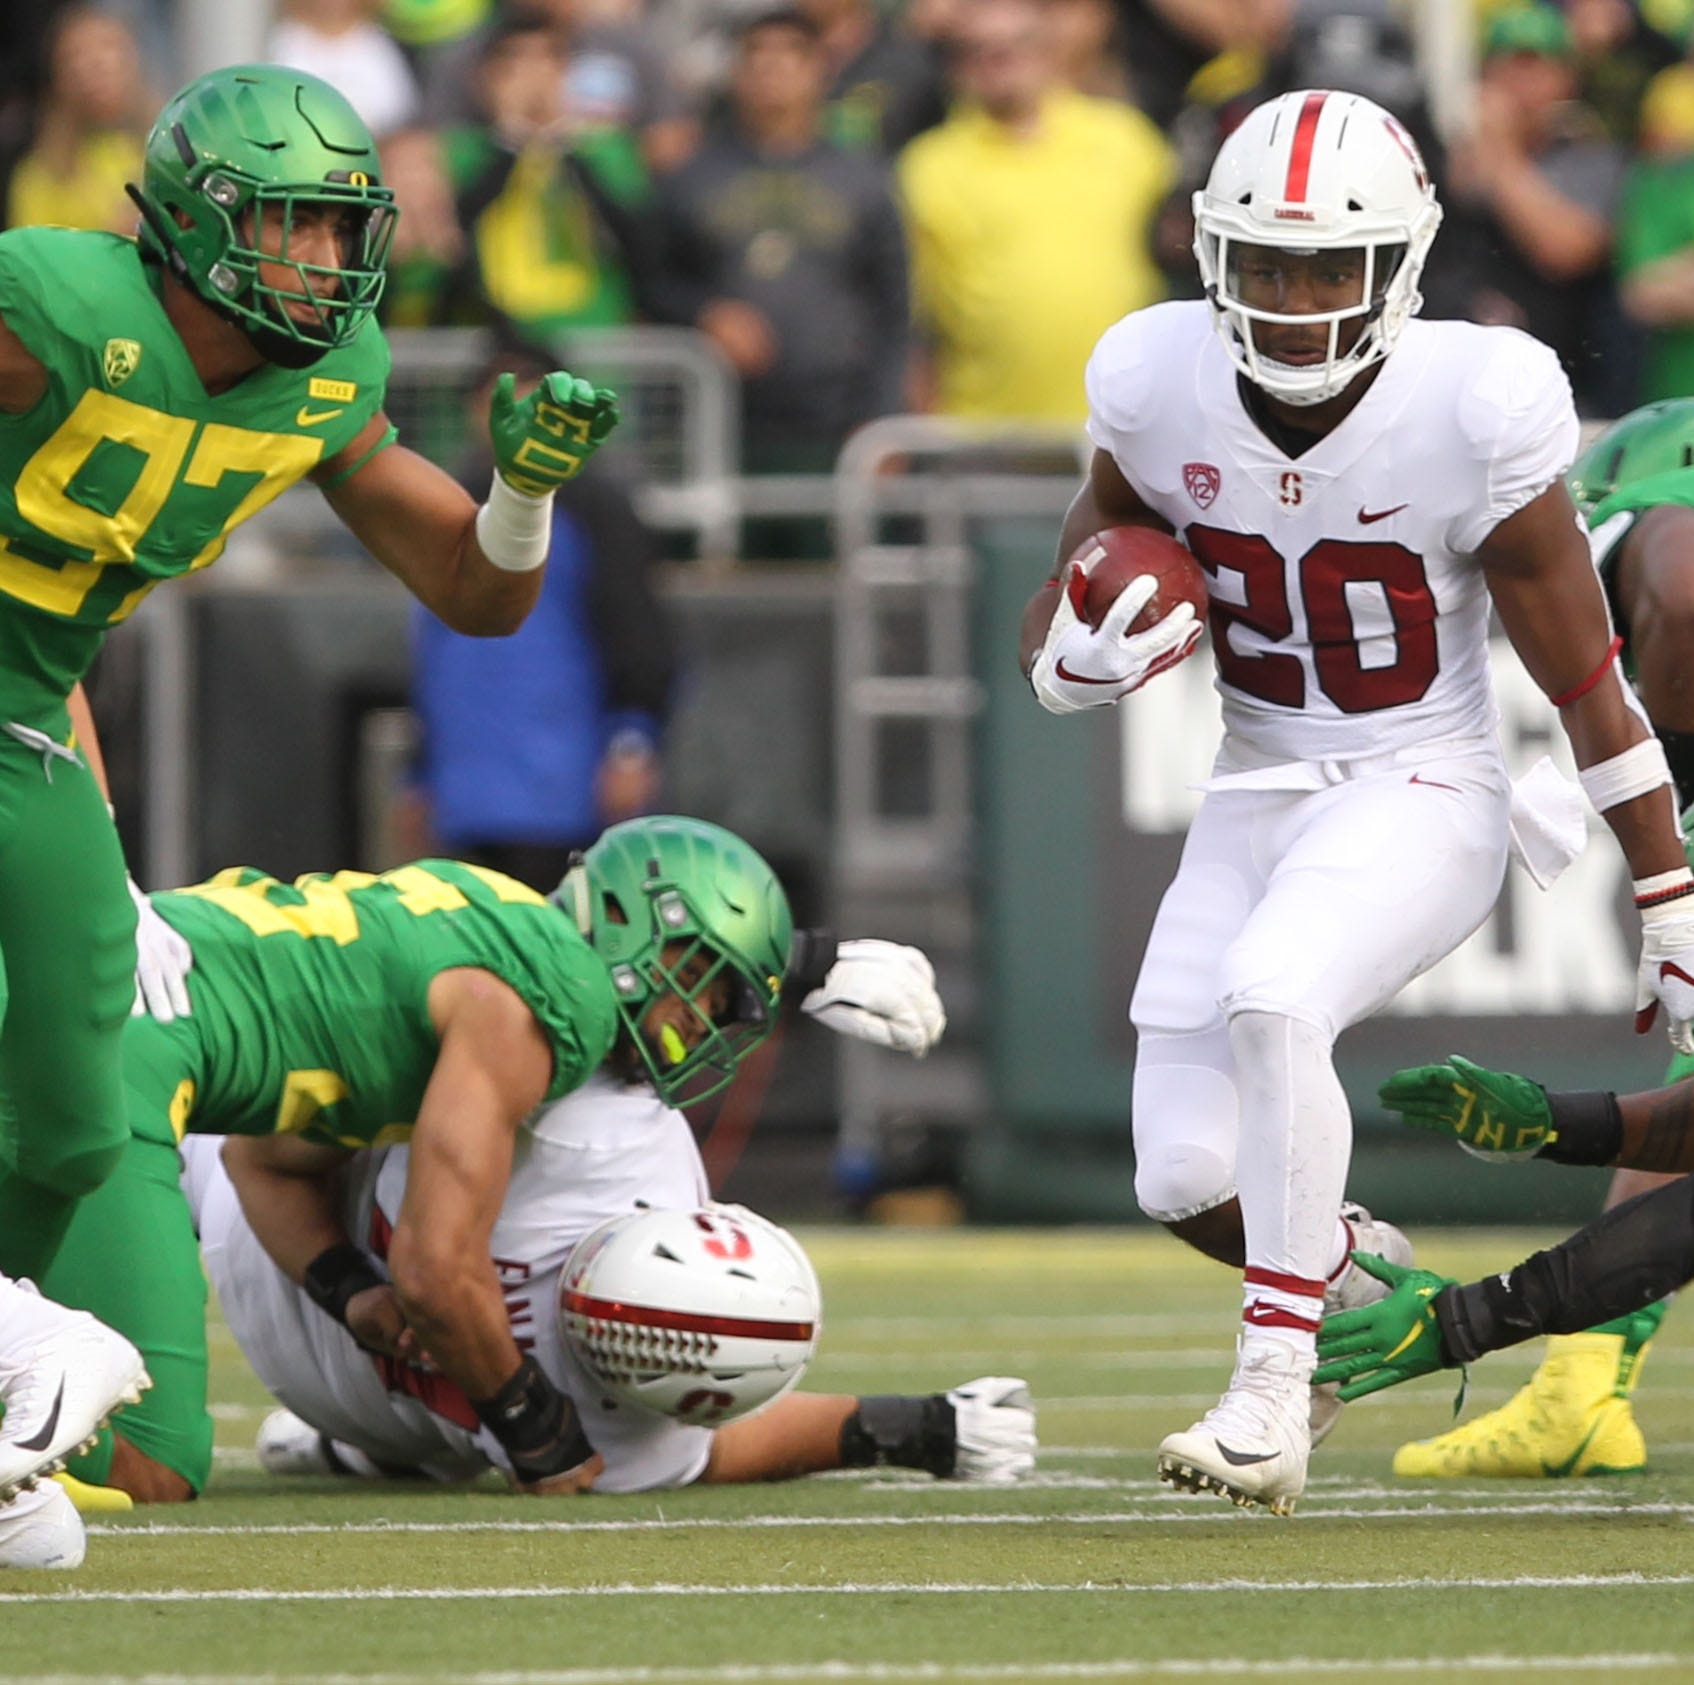 Oregon Ducks: Collapse against Stanford could be devastating long term